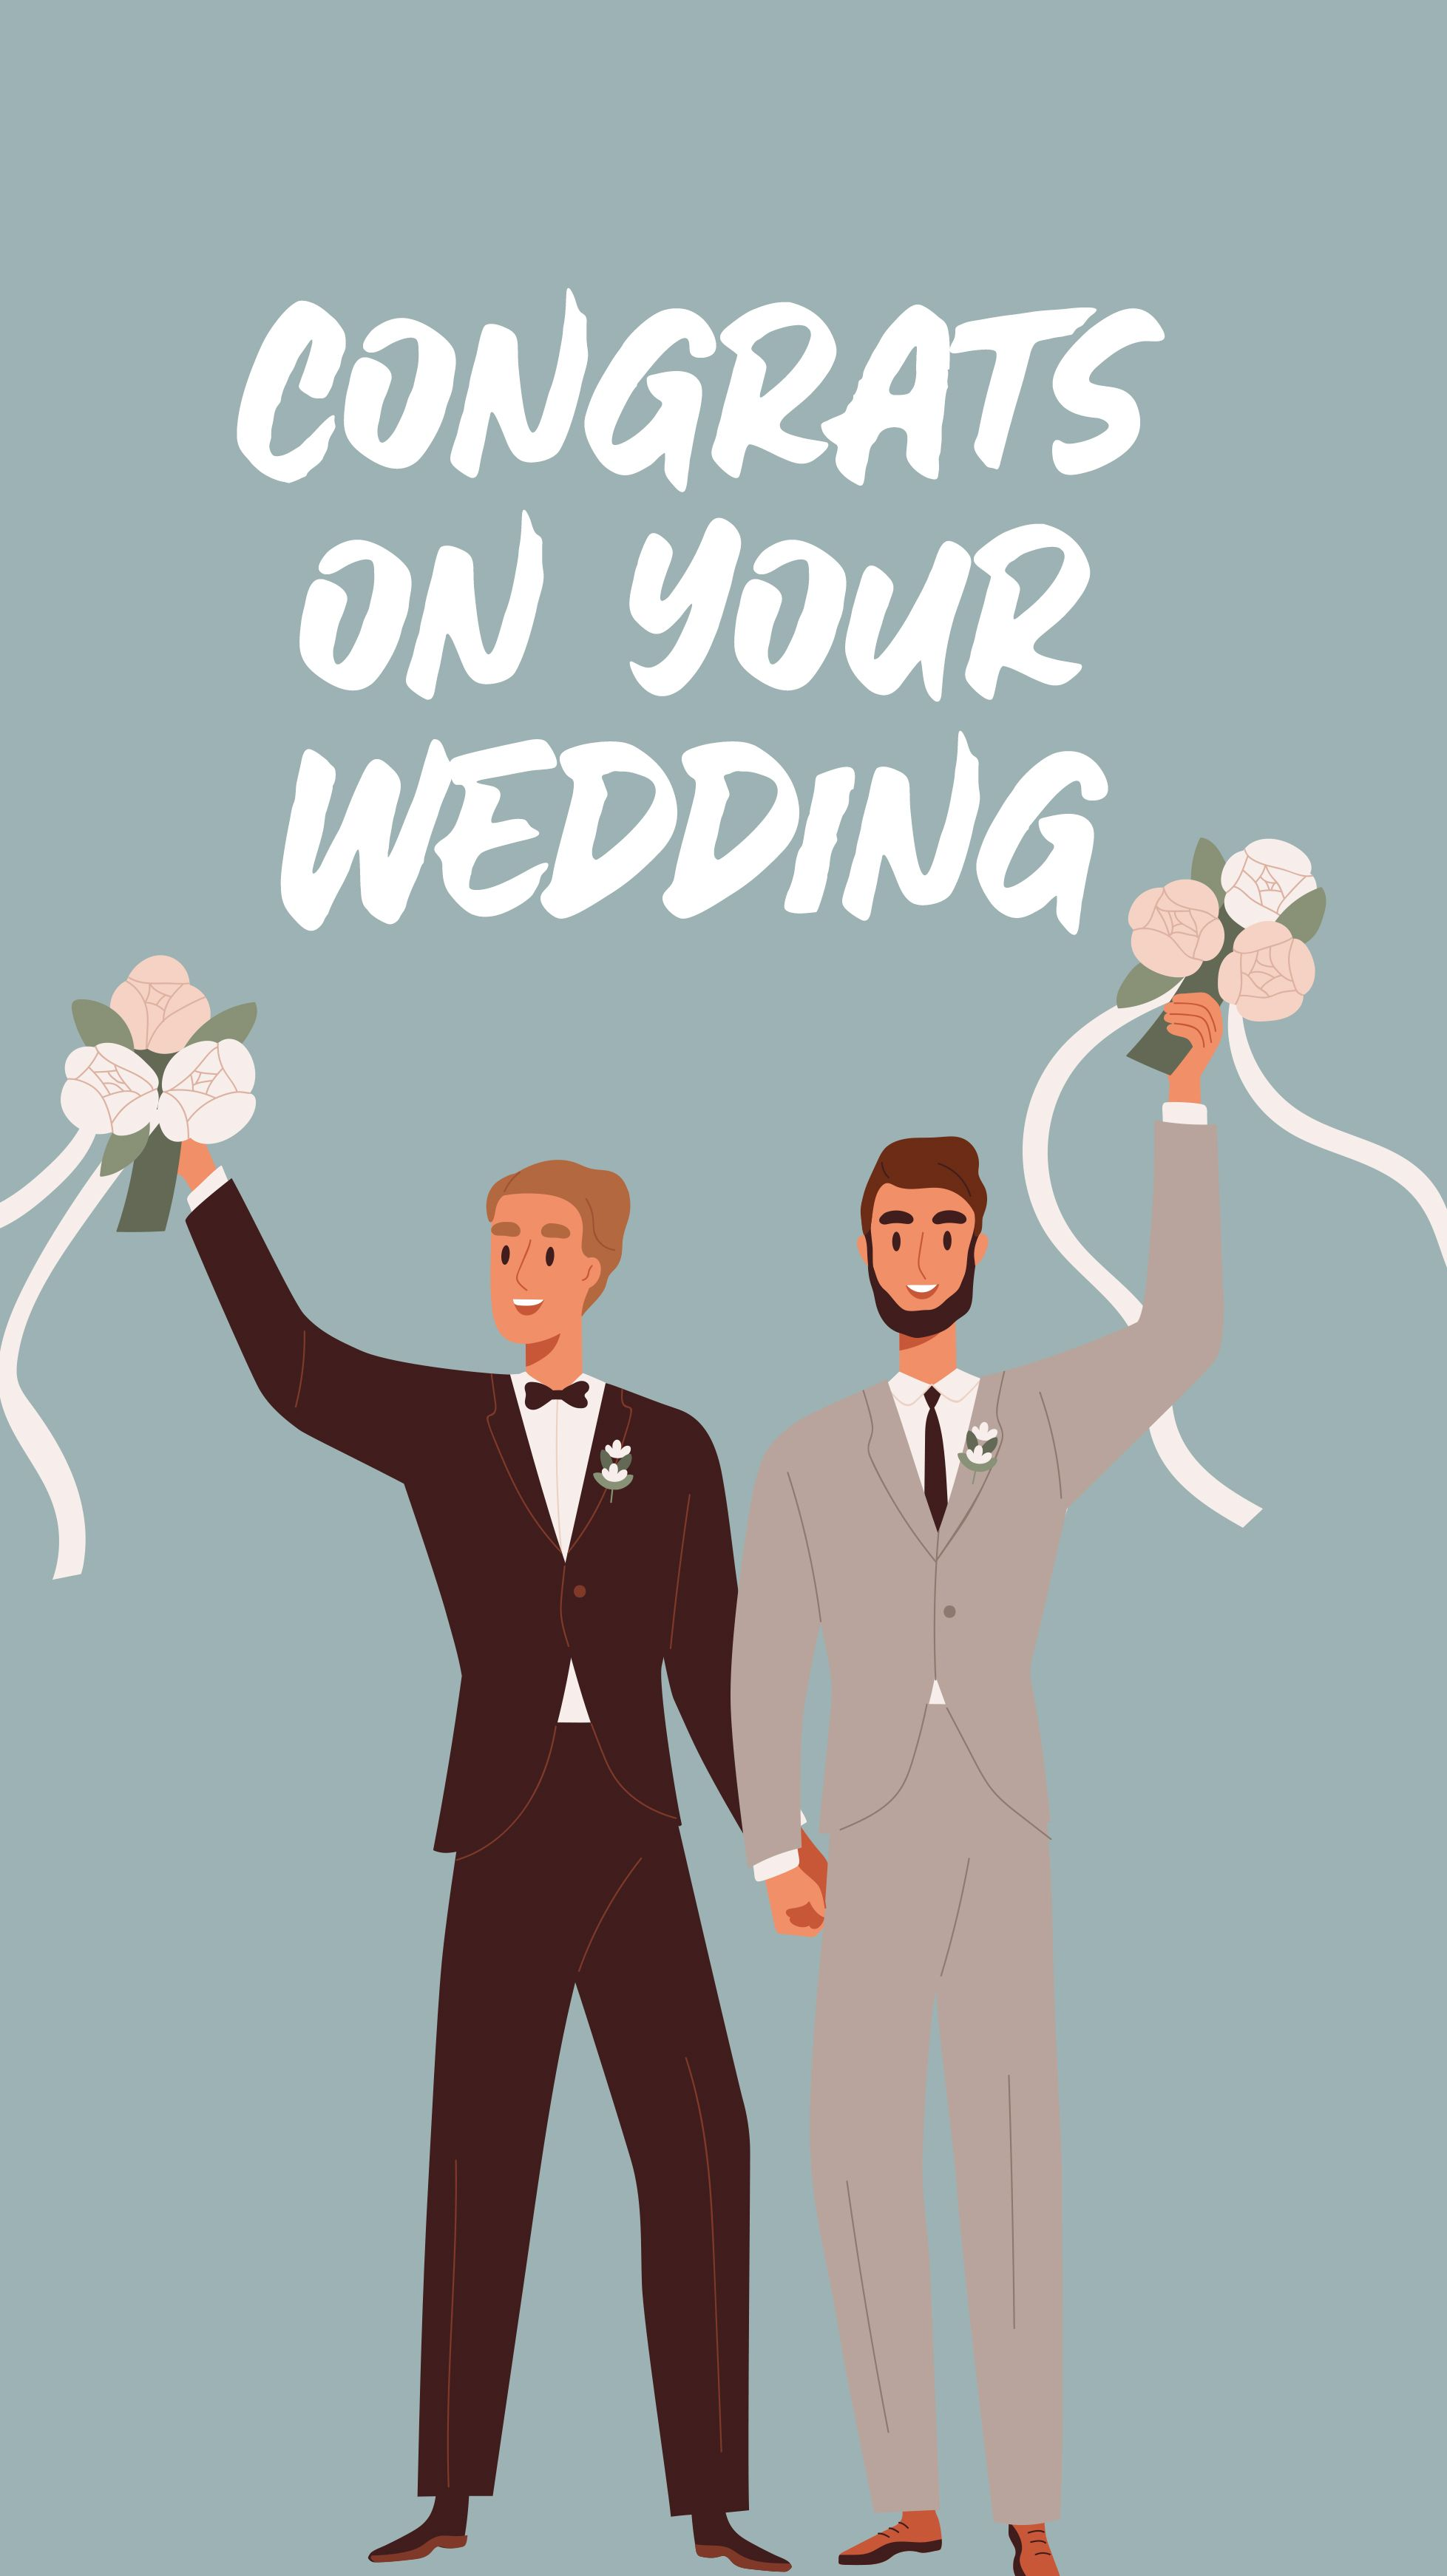 Congrats On Your Wedding